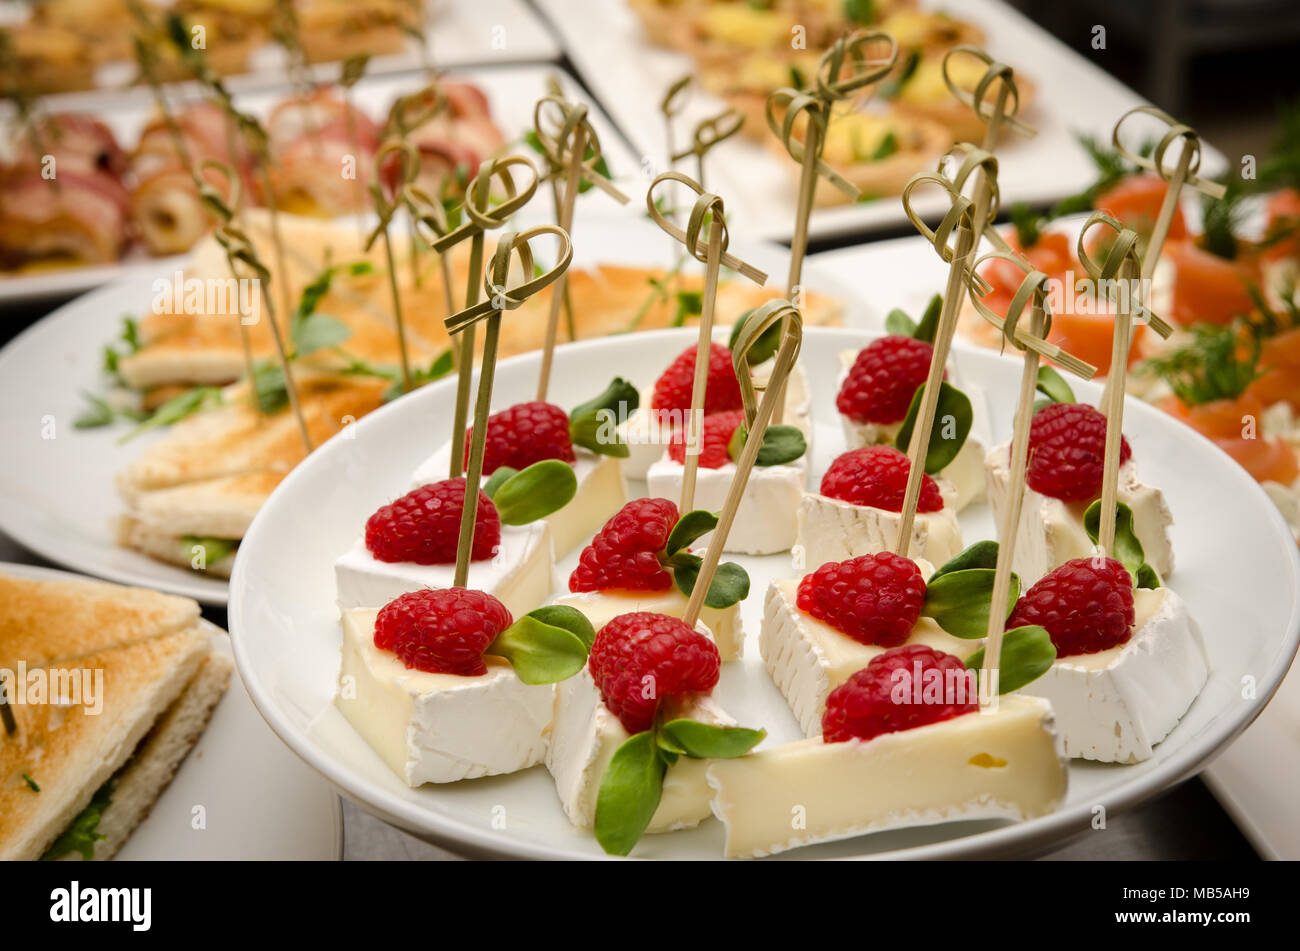 Miraculous Catering Buffet Table With A Delicious Food Stock Photo Download Free Architecture Designs Scobabritishbridgeorg